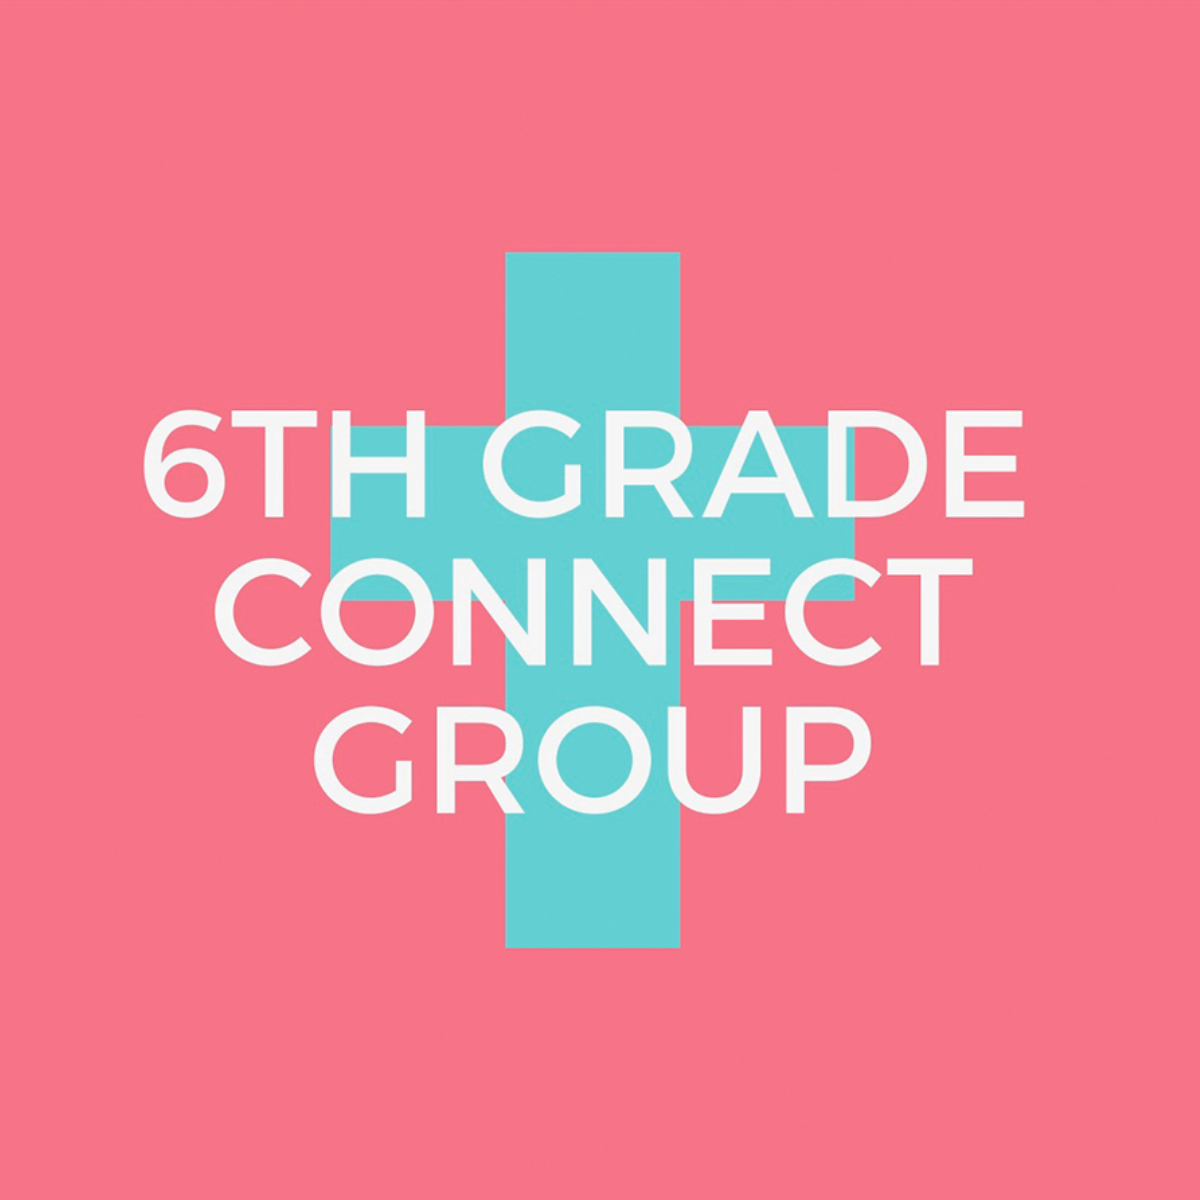 6ht grade connect